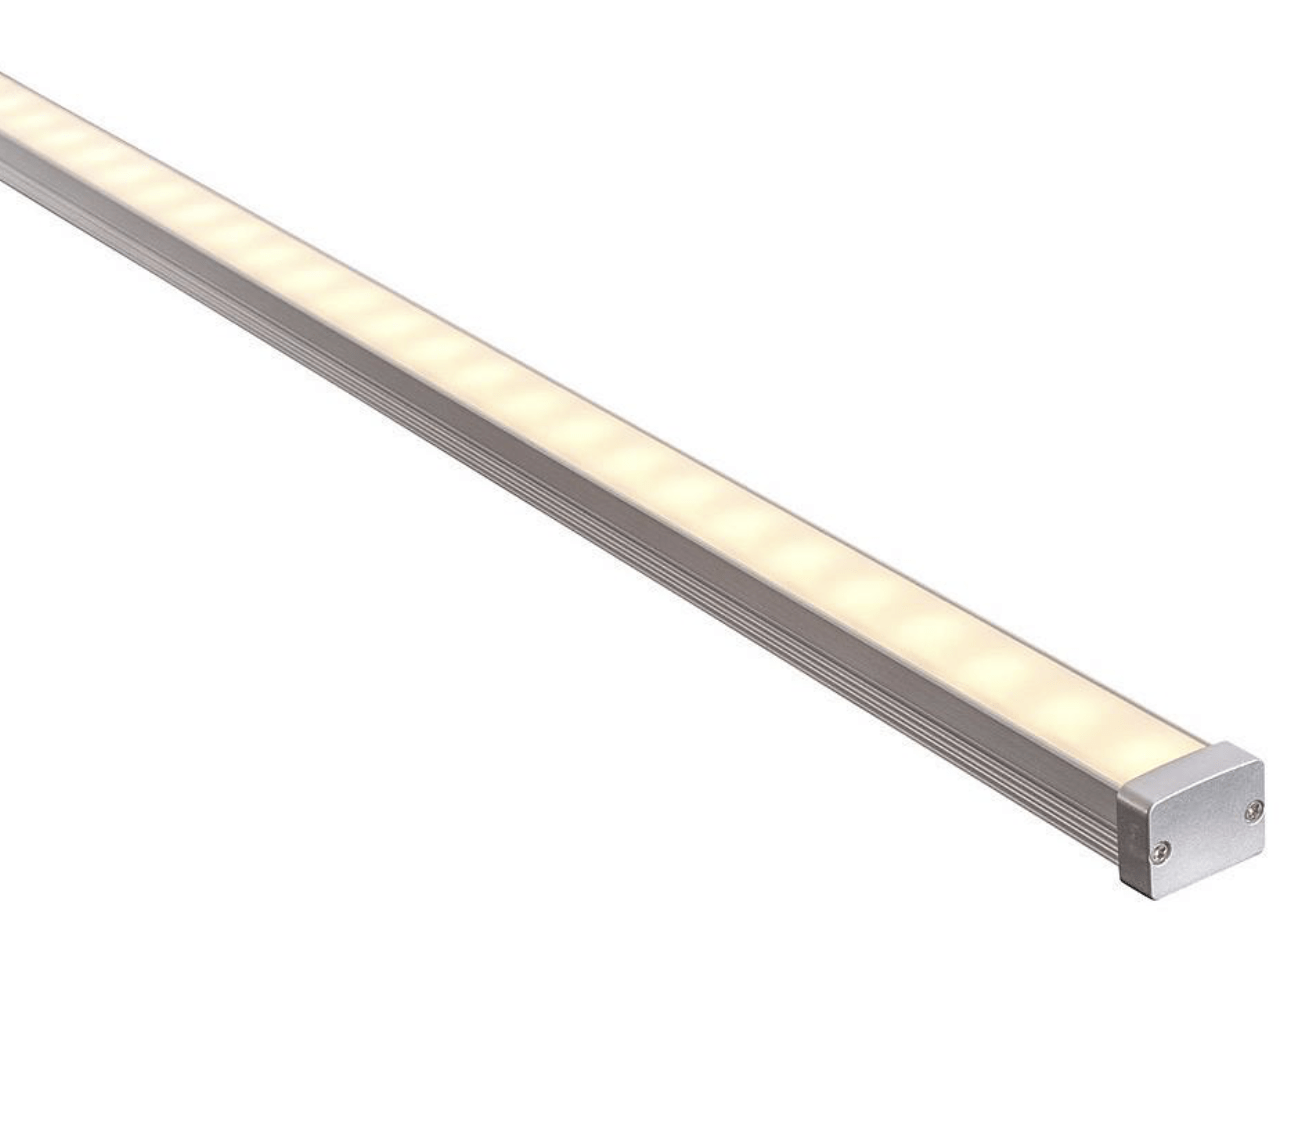 Profiles IP Rated Profile - Shallow Square - HV9693-1812 lighting shops lighting stores LED lights  lighting designer